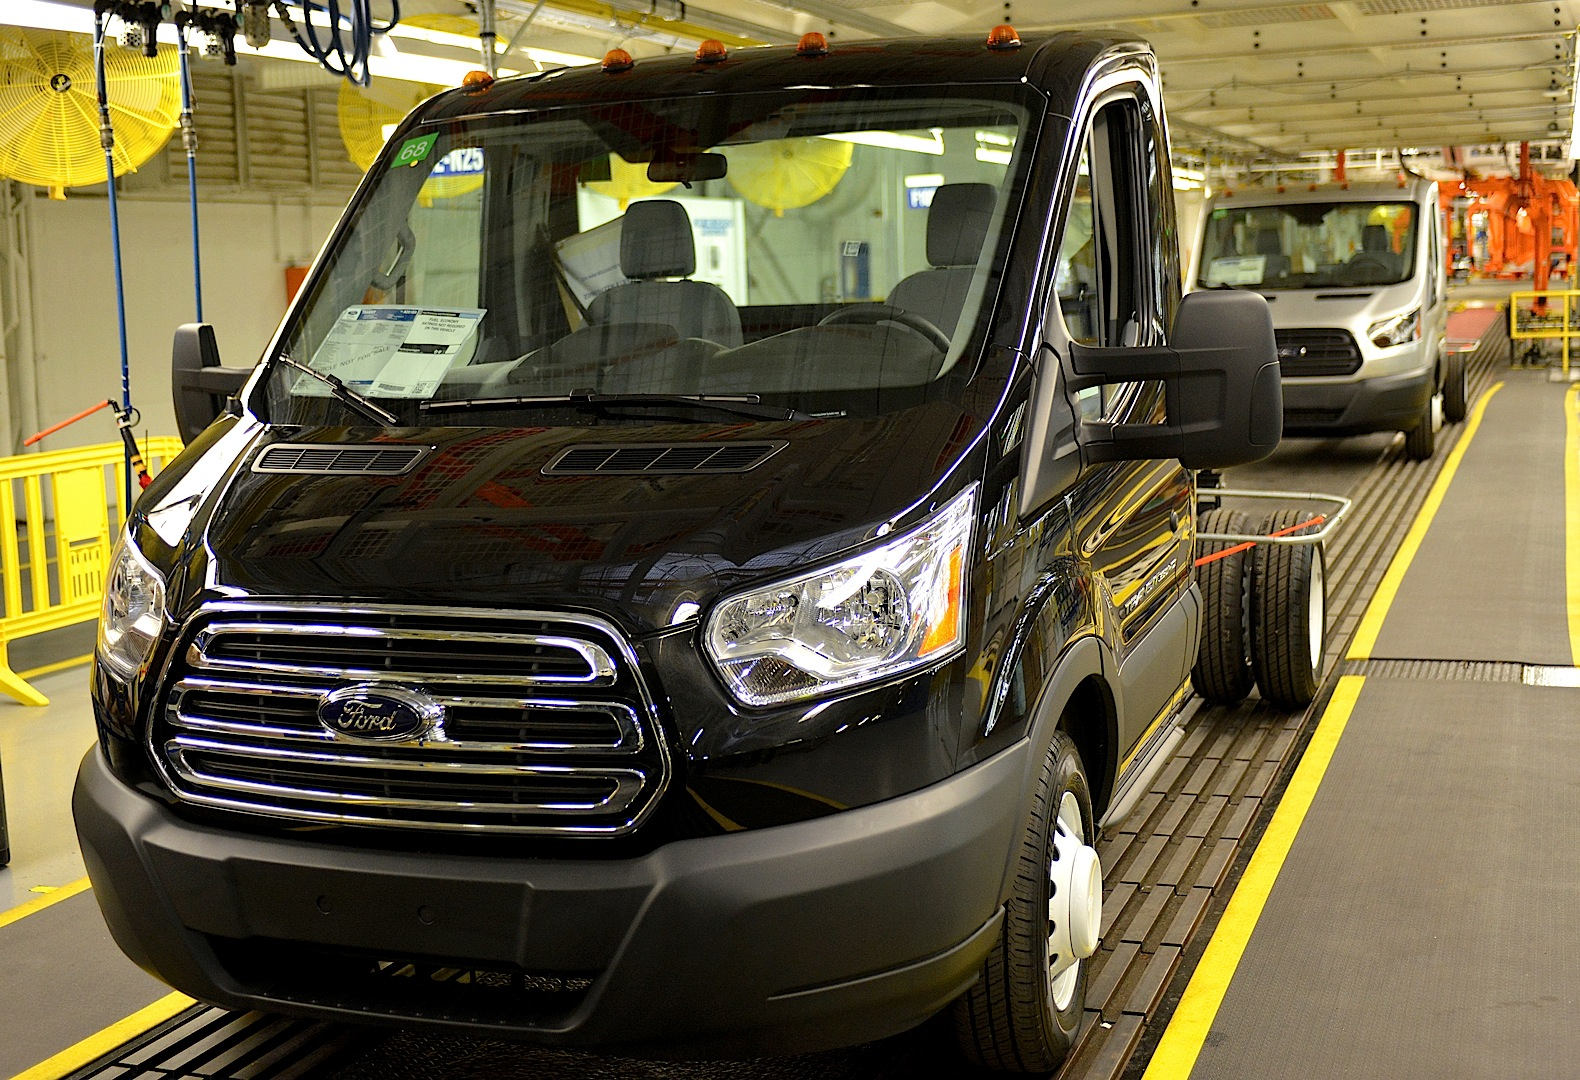 2013 - [Ford] Transit (Connect & MaxiVan) - Page 4 Ford-starts-2015-transit-van-production-photo-gallery_4